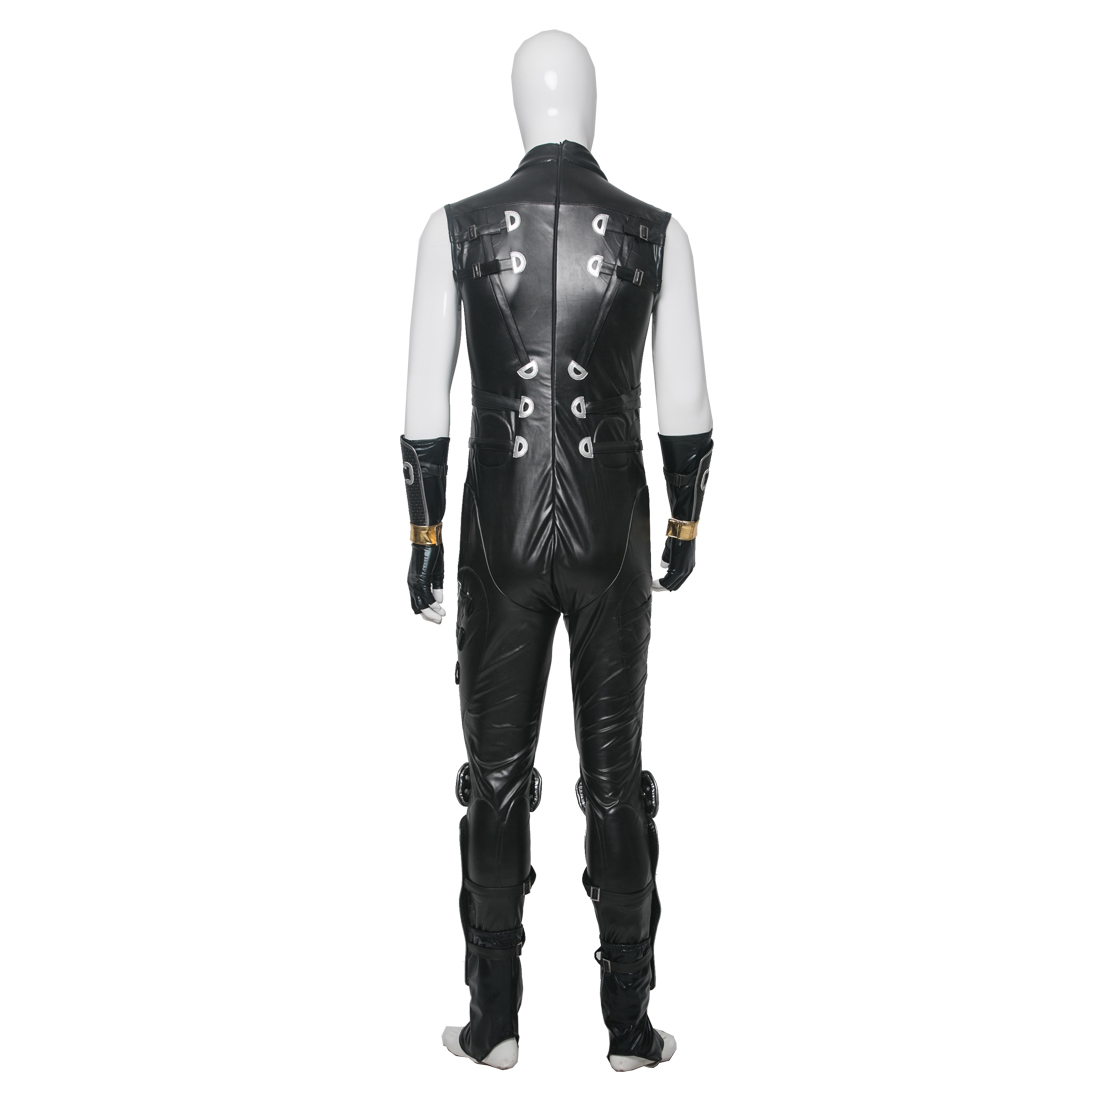 Ninja Gaiden Ryu Hayabusa Cosplay Costume Leather Full Set